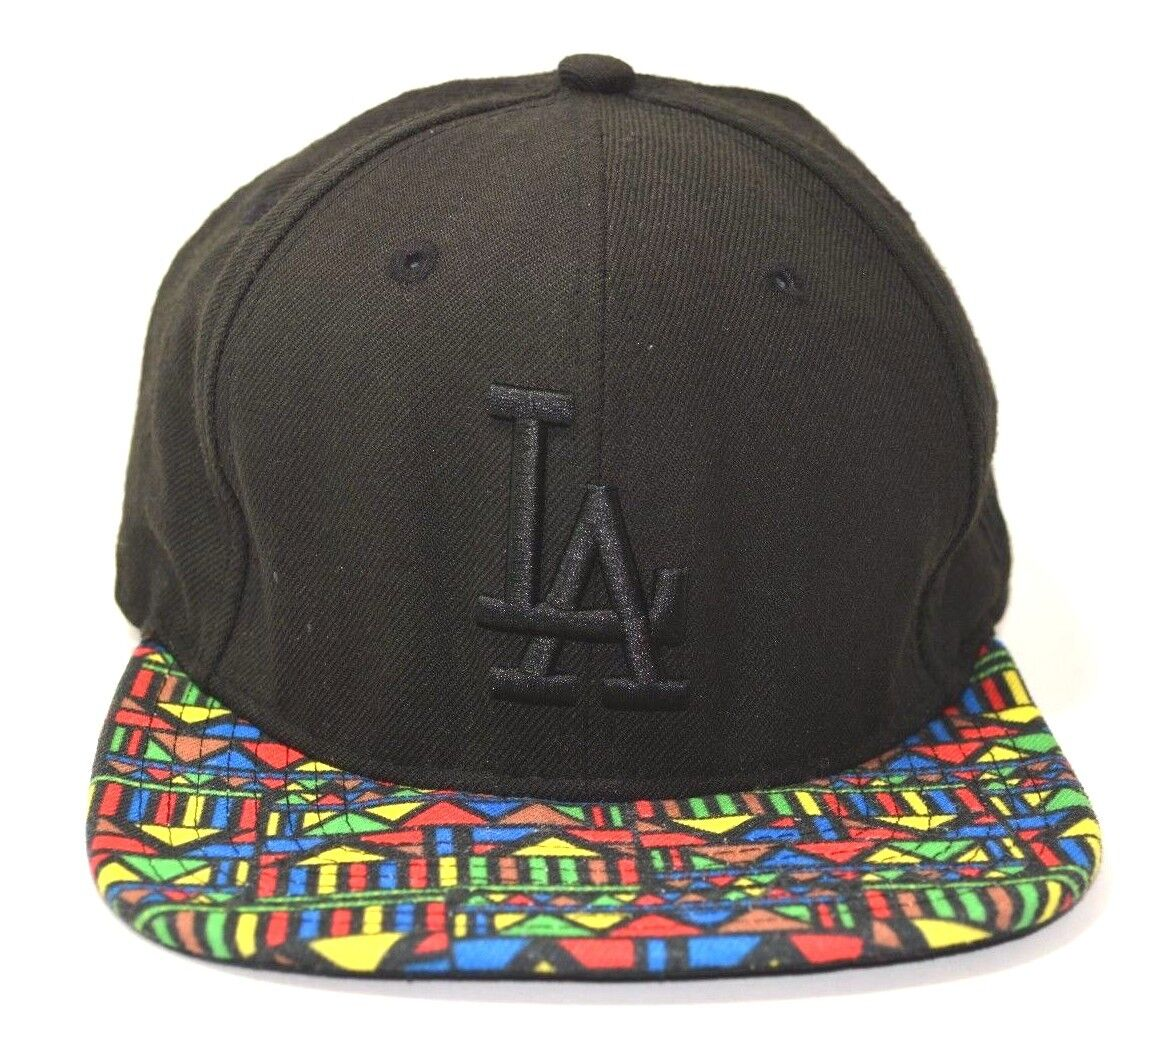 874acb5280c ... mlb oatmeal ogold 9fifty snapback cap oatmeal brown e351e 82ff5  italy  los hook angeles dodgers new era 9 fifty original fit hook los vintage  fitted hat